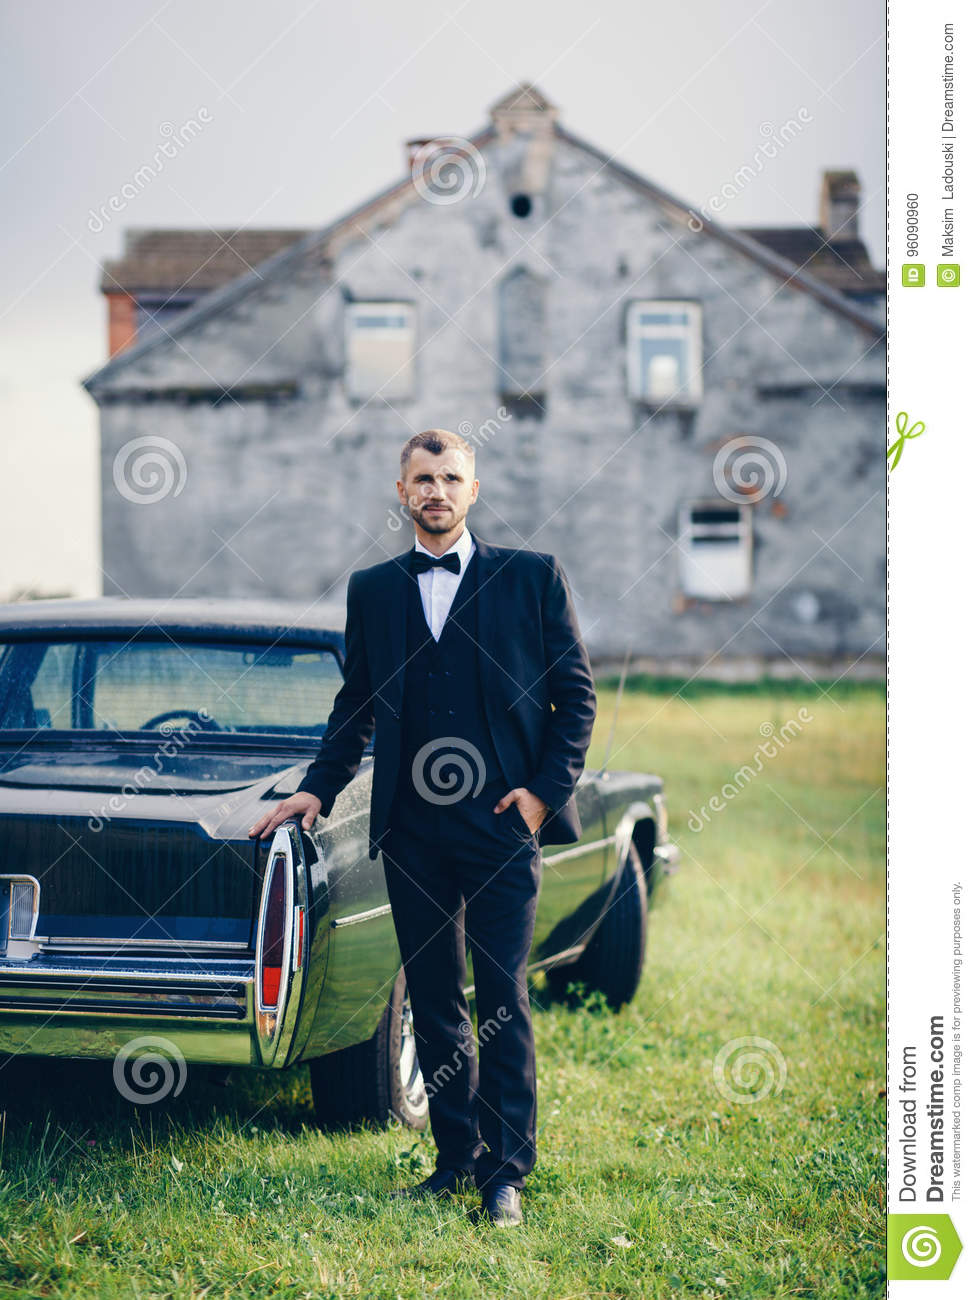 8c36e469d7e4 Handsome groom at wedding tuxedo smiling and waiting for bride near retro  car. Elegant groom in black costume and bow-tie